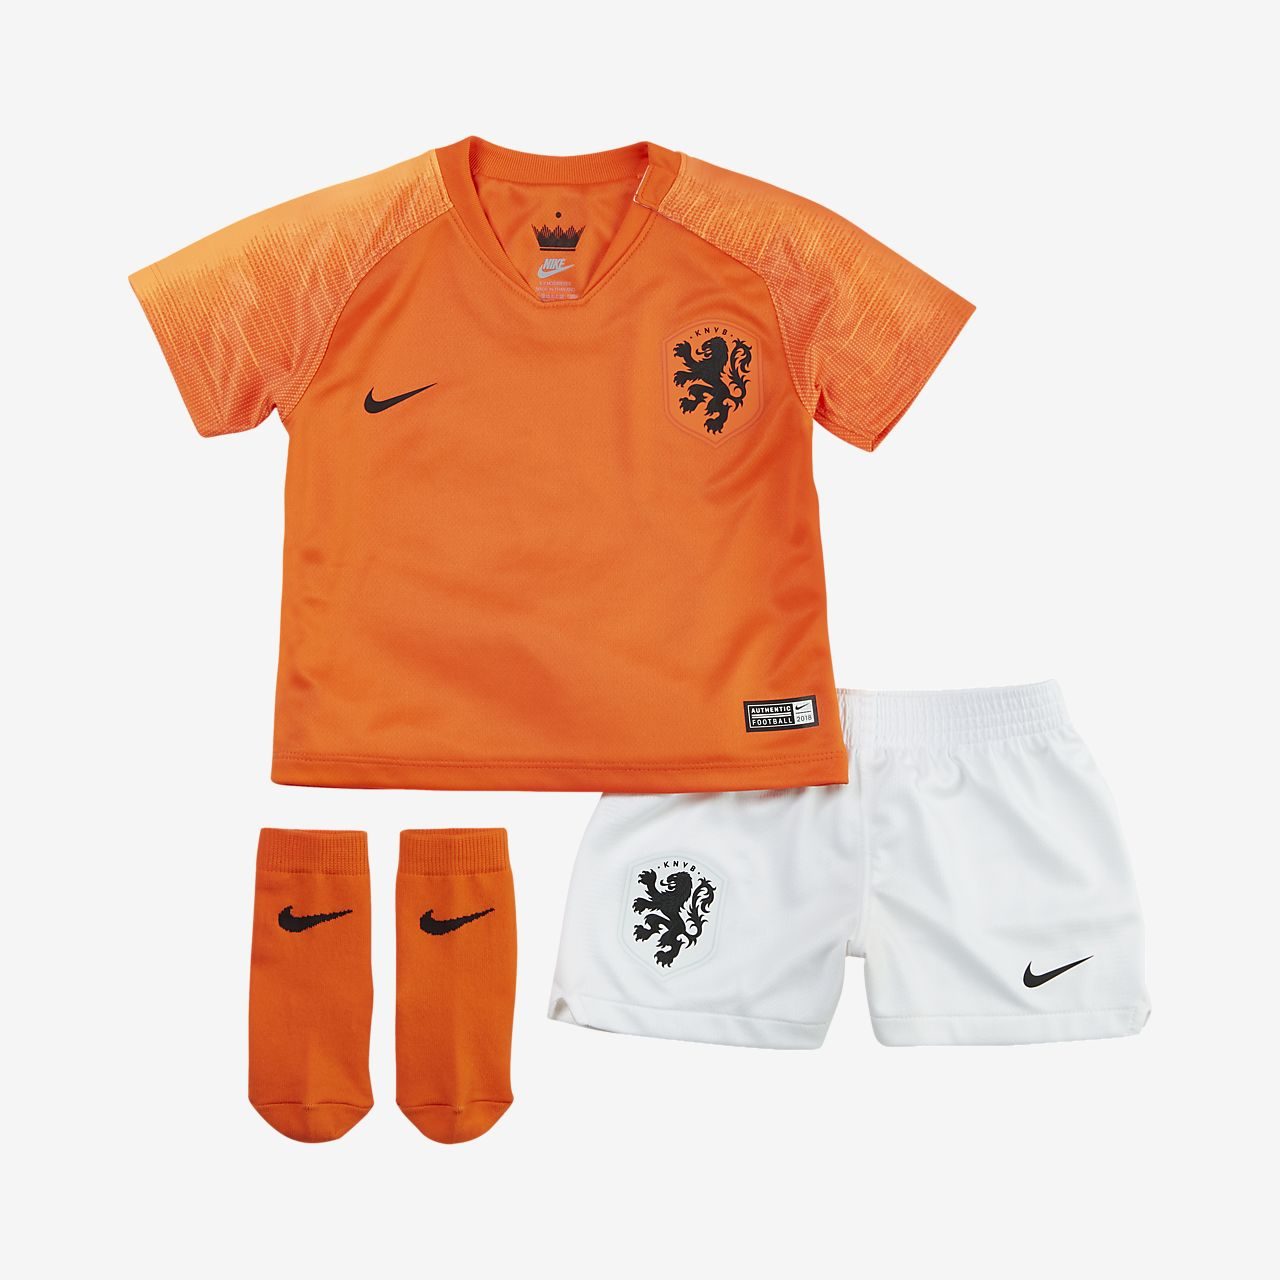 online retailer 82a23 7e96e 2018 Netherlands Stadium Home Baby & Toddler Football Kit